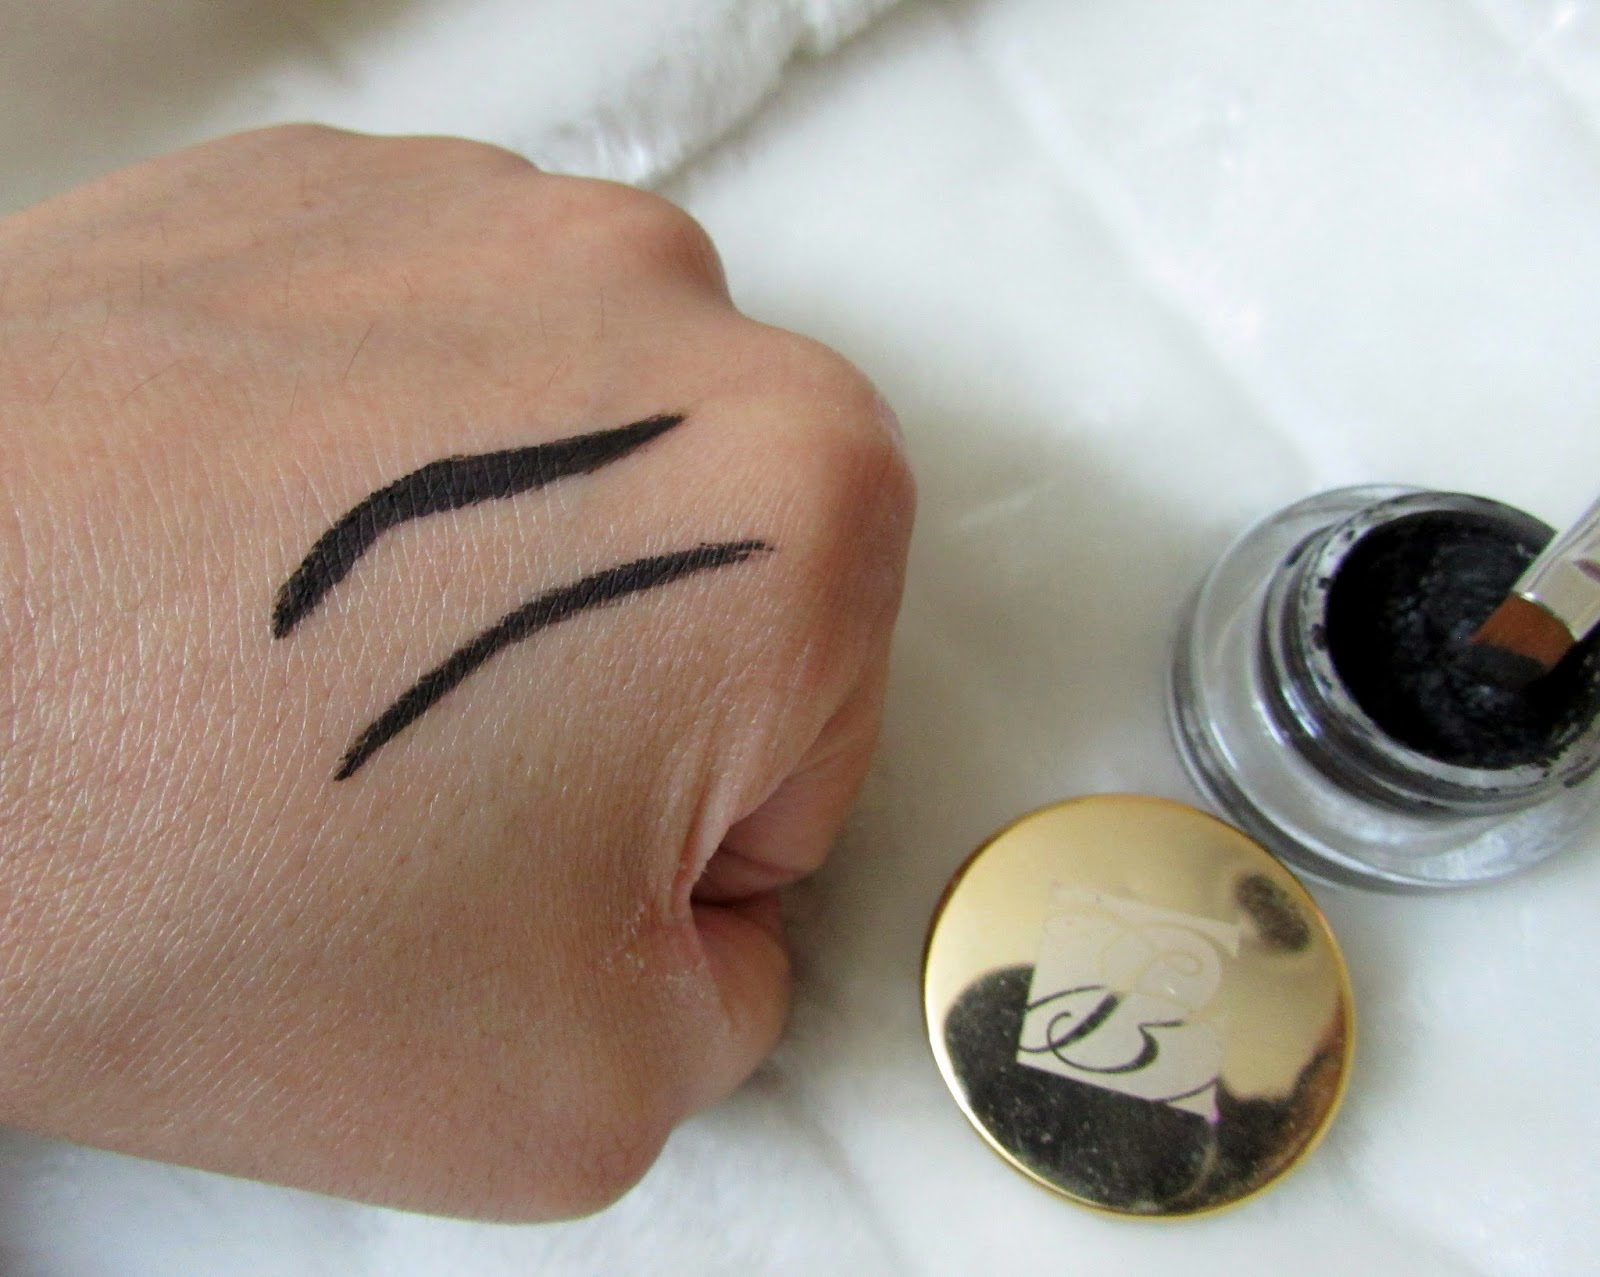 eyes, makeup , eyeliner, Estee Lauder gel liner , Estee lauder gel liner price , Estee lauder gel liner Review, liner india, gel liner india , estee lauder , estee lauder india , estee lauder price india , no smudge , best eye liner , estee lauder product review , estee lauder gel liner review , estee lauder gel liner price , estee lauder gel liner price india , estee lauder gel liner review india ,